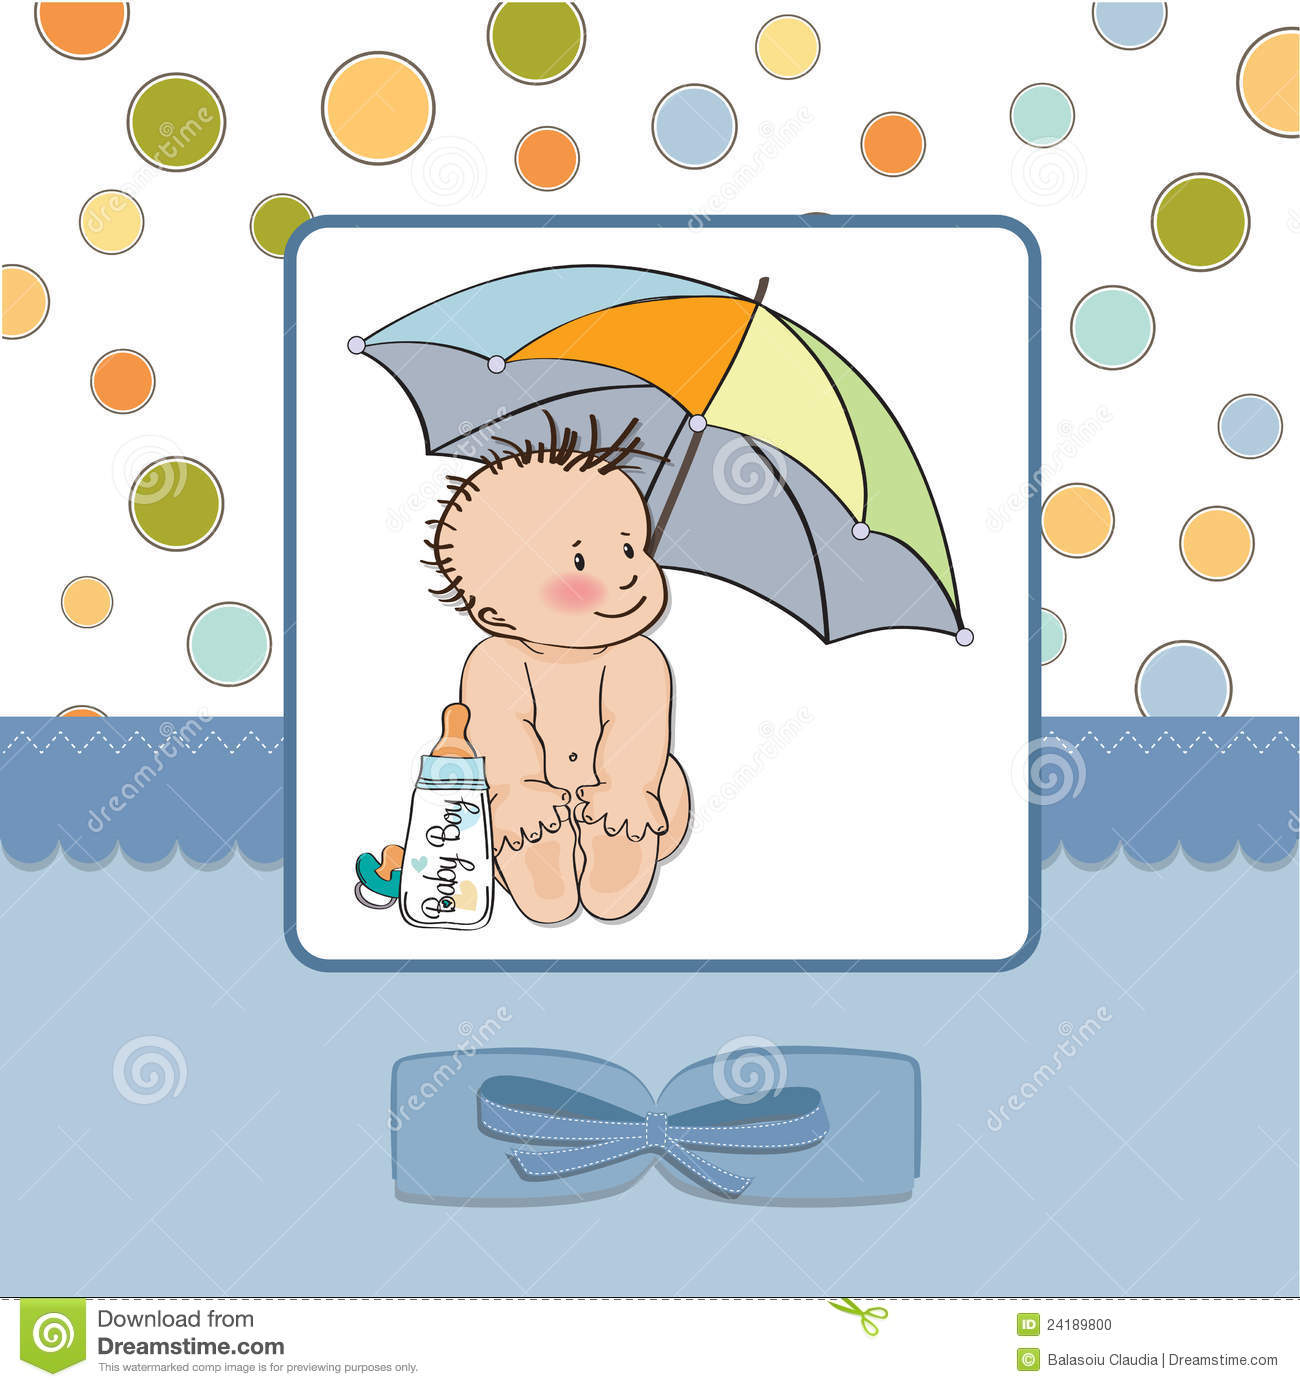 More similar stock images of welcome new baby boy